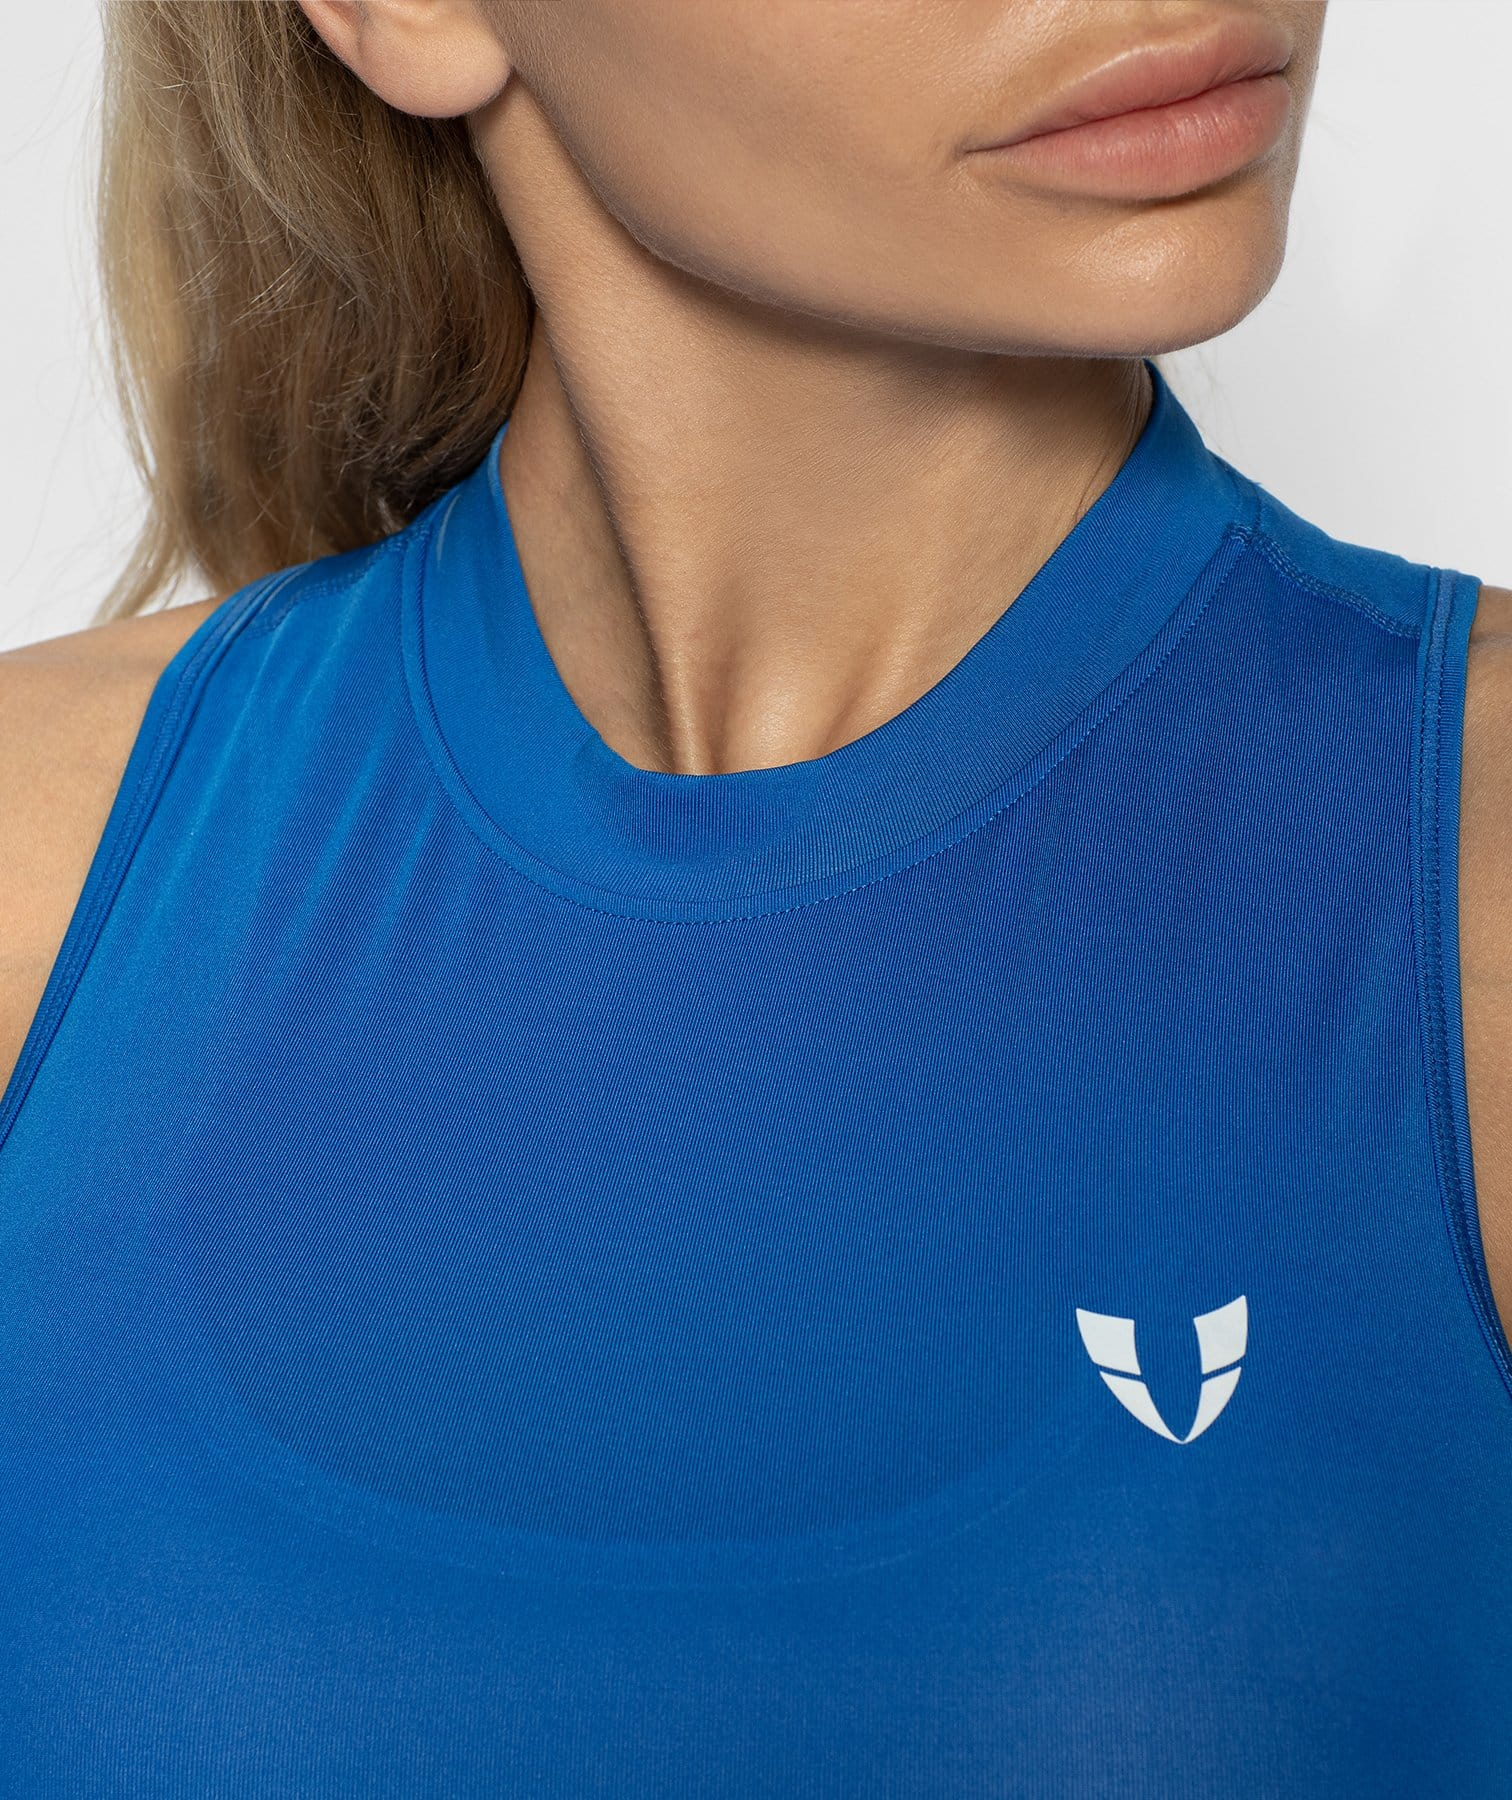 High Neck Vest - Blue - Firm Abs Fitness